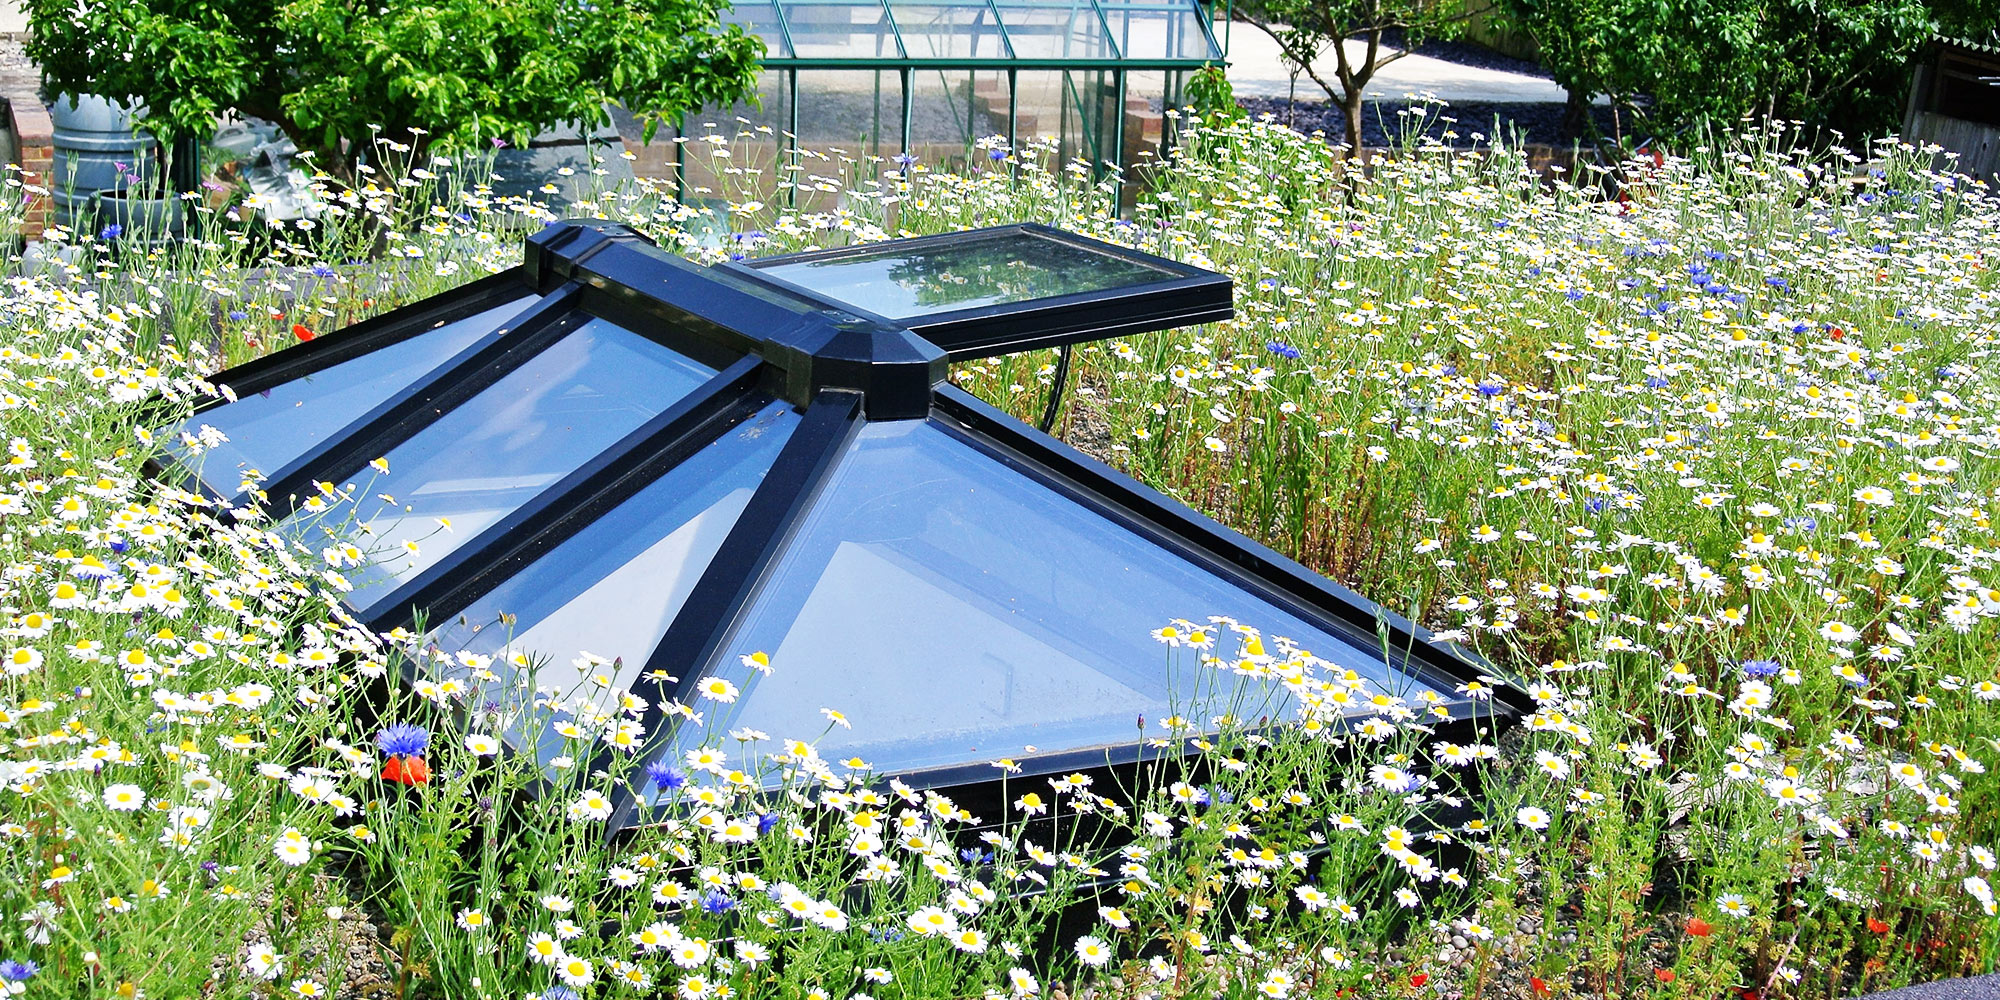 Green Roof Plant Development Organic Roofs